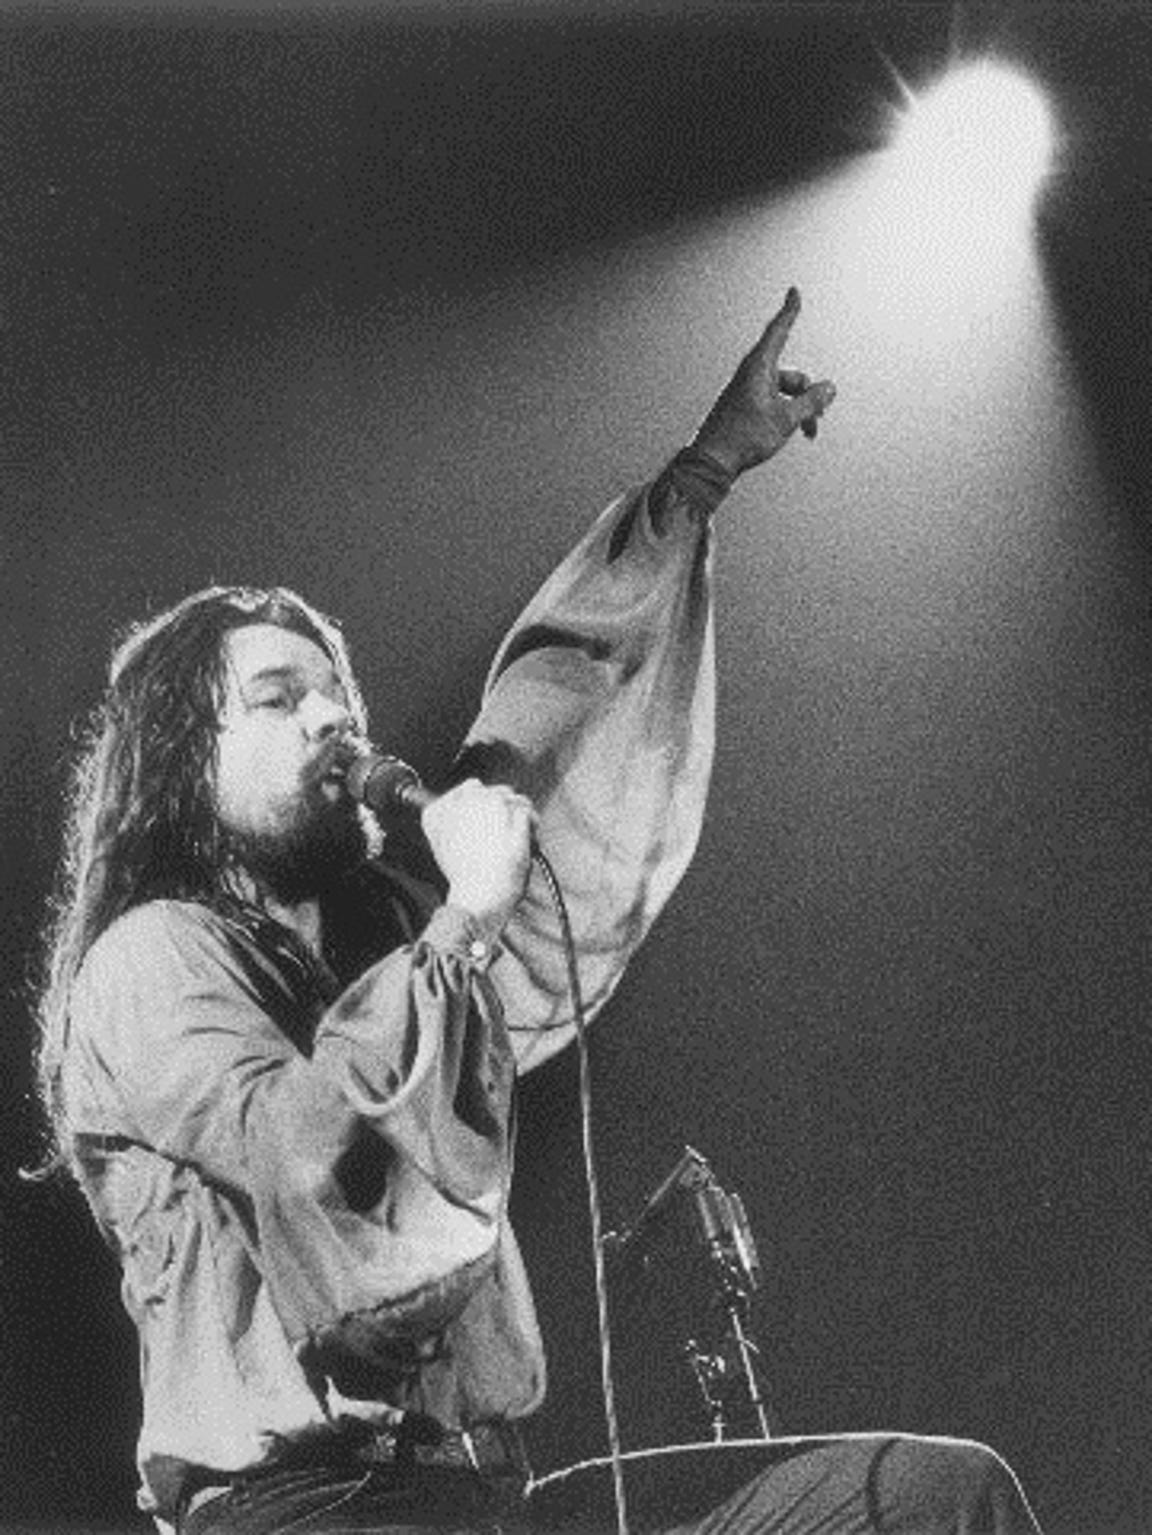 Bob Seger at Cobo Hall on May 24, 1978